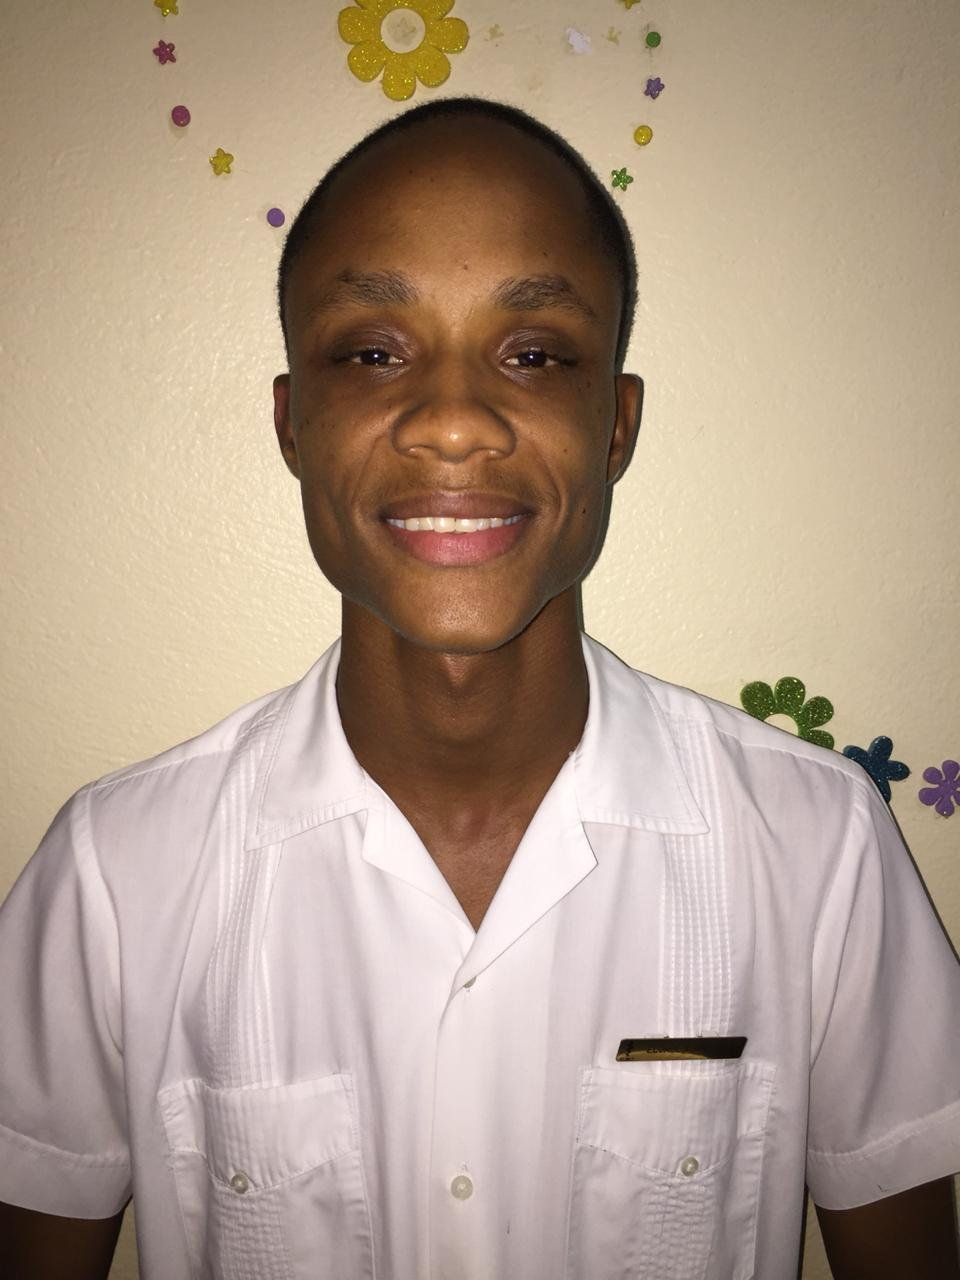 """- Name: Elombe Isaa CalvertUniversity/ College: University of the West Indies""""Being a recipient of the Land We Love Scholarship means a great deal to me. It reaffirms my will to keep on pursuing my dreams and the hope of one day becoming an Ophthalmic Plastic and Reconstructive Surgeon. The future is ours seize it!"""""""